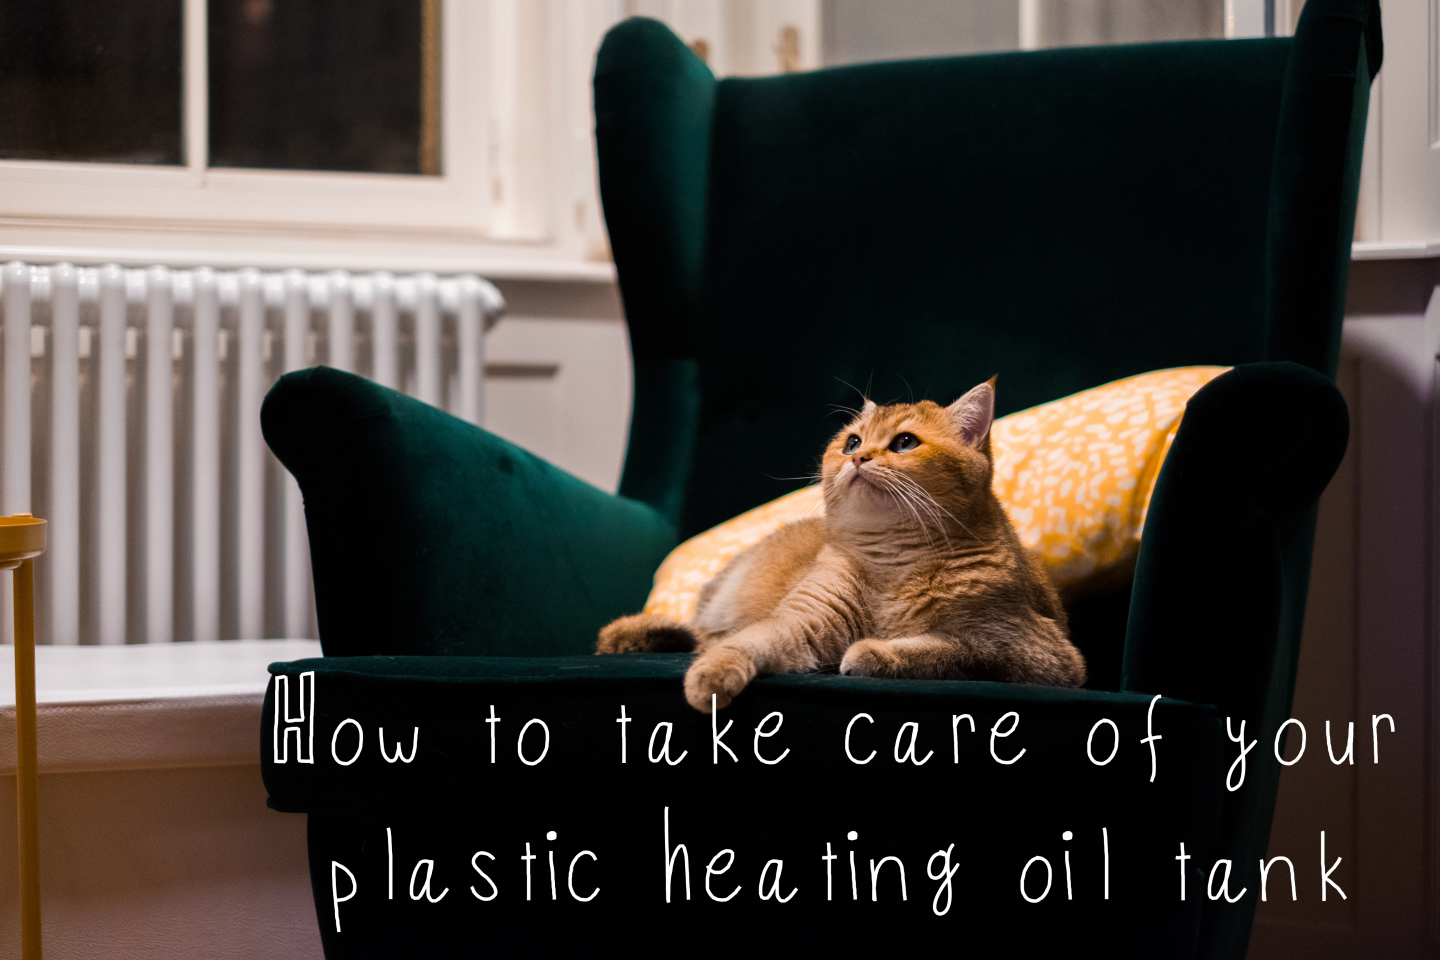 Looking After Your Plastic-fantastic Oil Tank